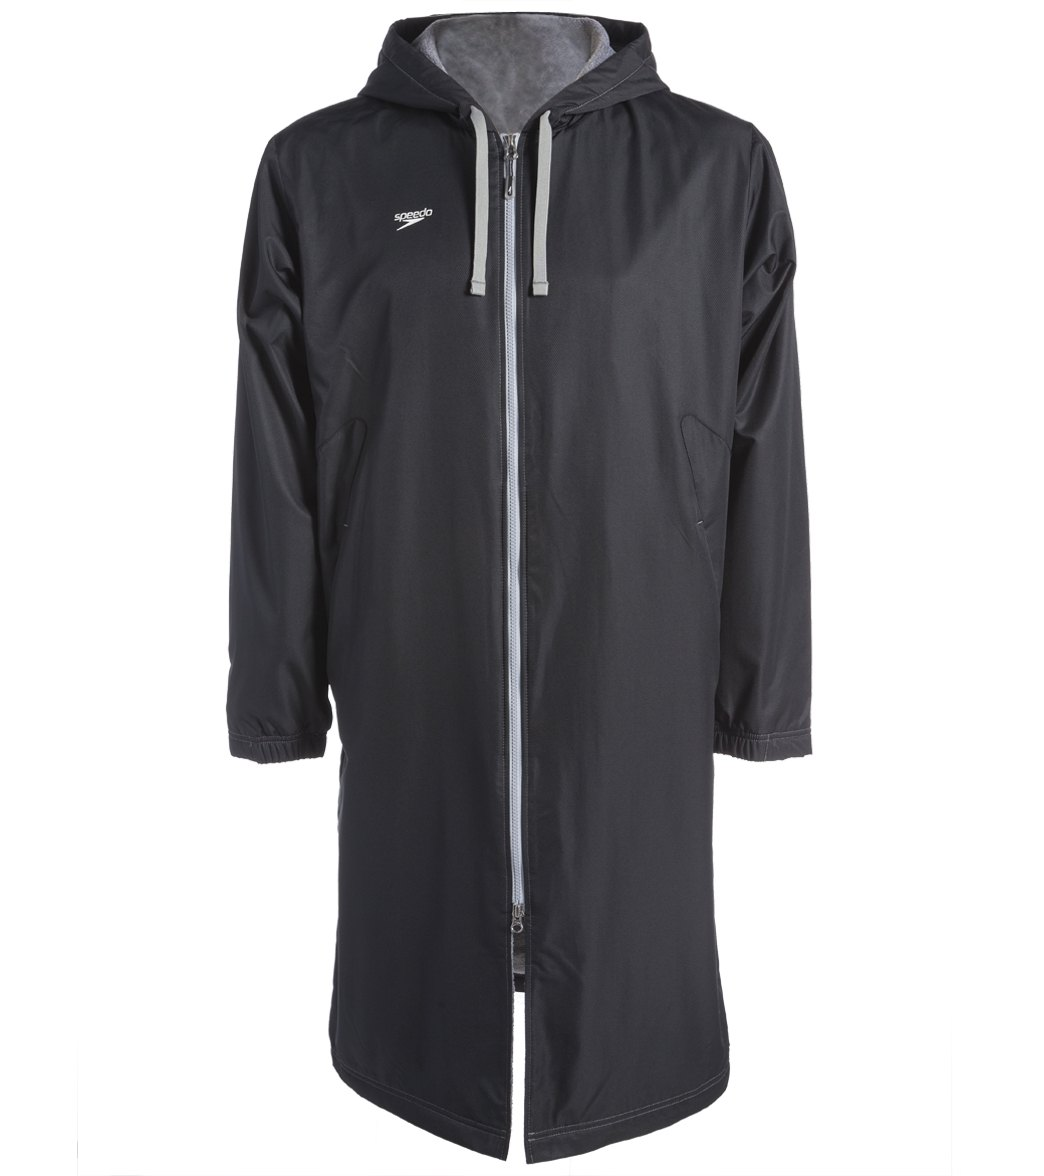 Speedo Unisex Team Parka at SwimOutlet.com - Free Shipping